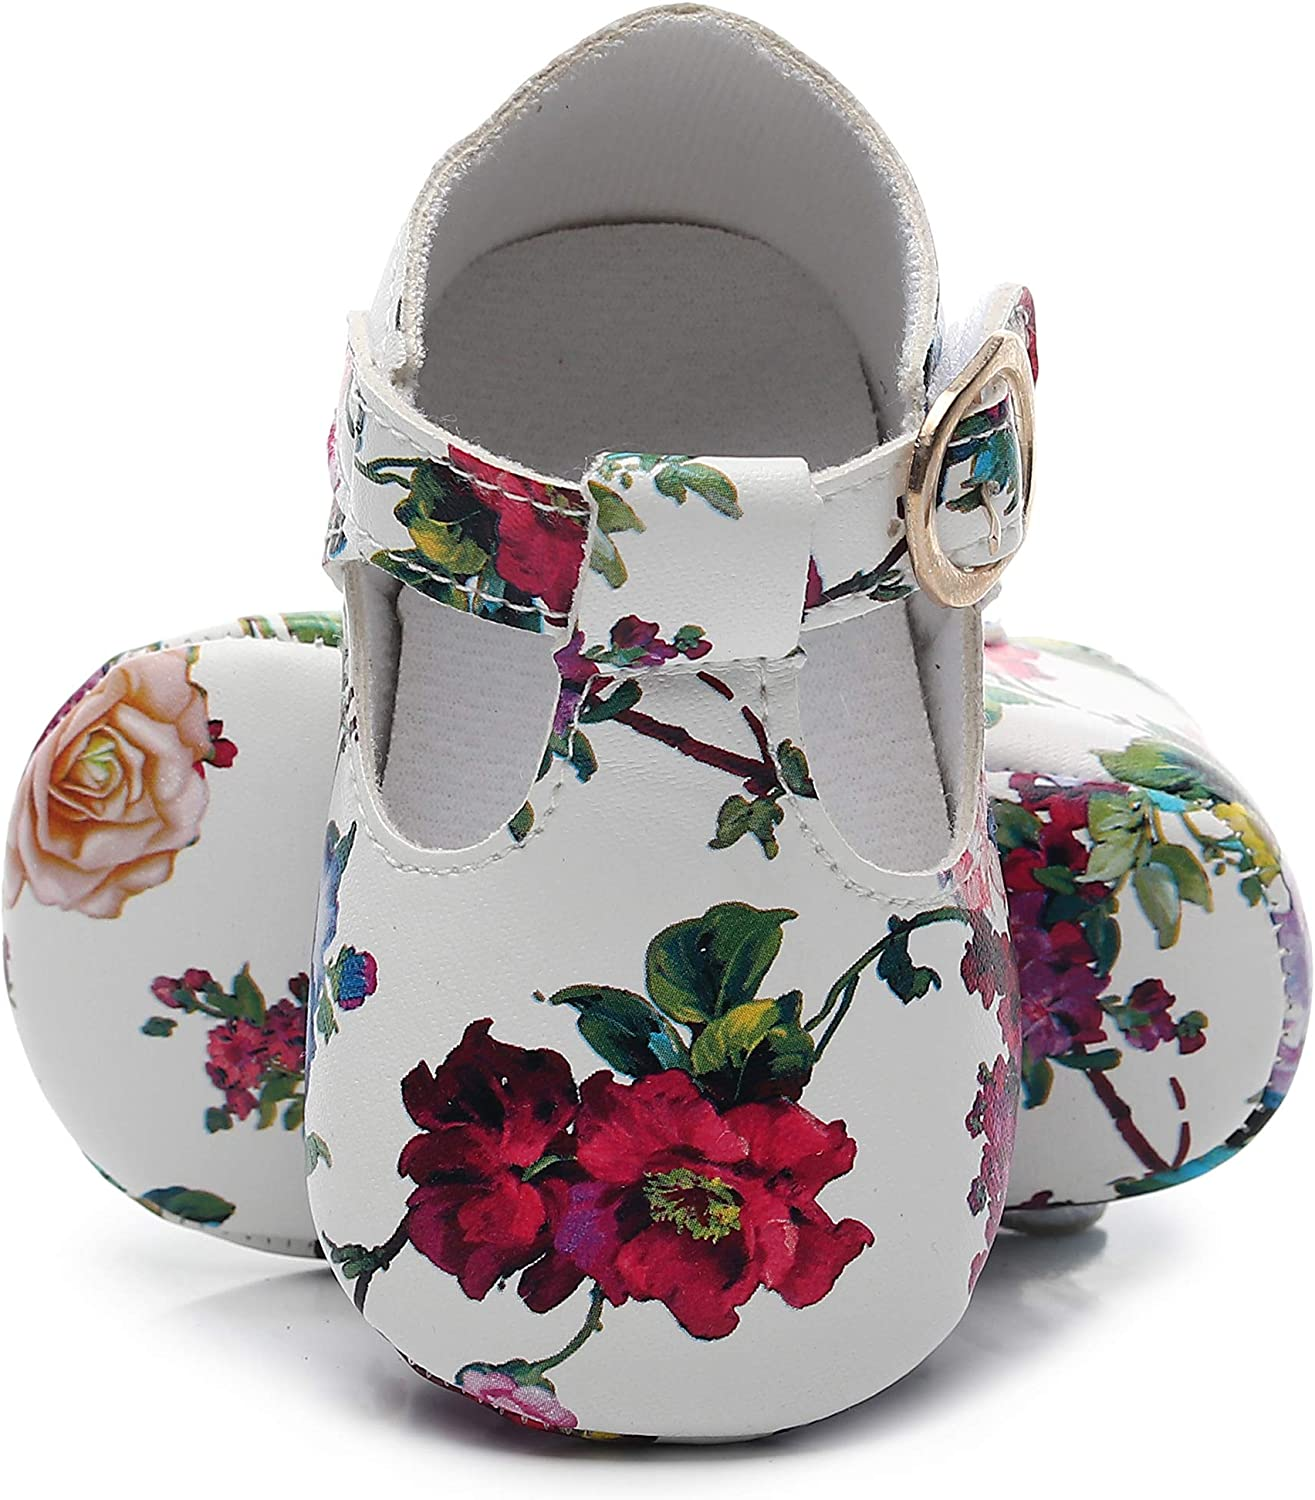 HONGTEYA T-Strap Baby Moccasins Shoes Cartoon Flower Print Design with Soft Sole T-bar Sandals Mary Jane Flats for Infants Prewalkers Toddlers Boys Girls